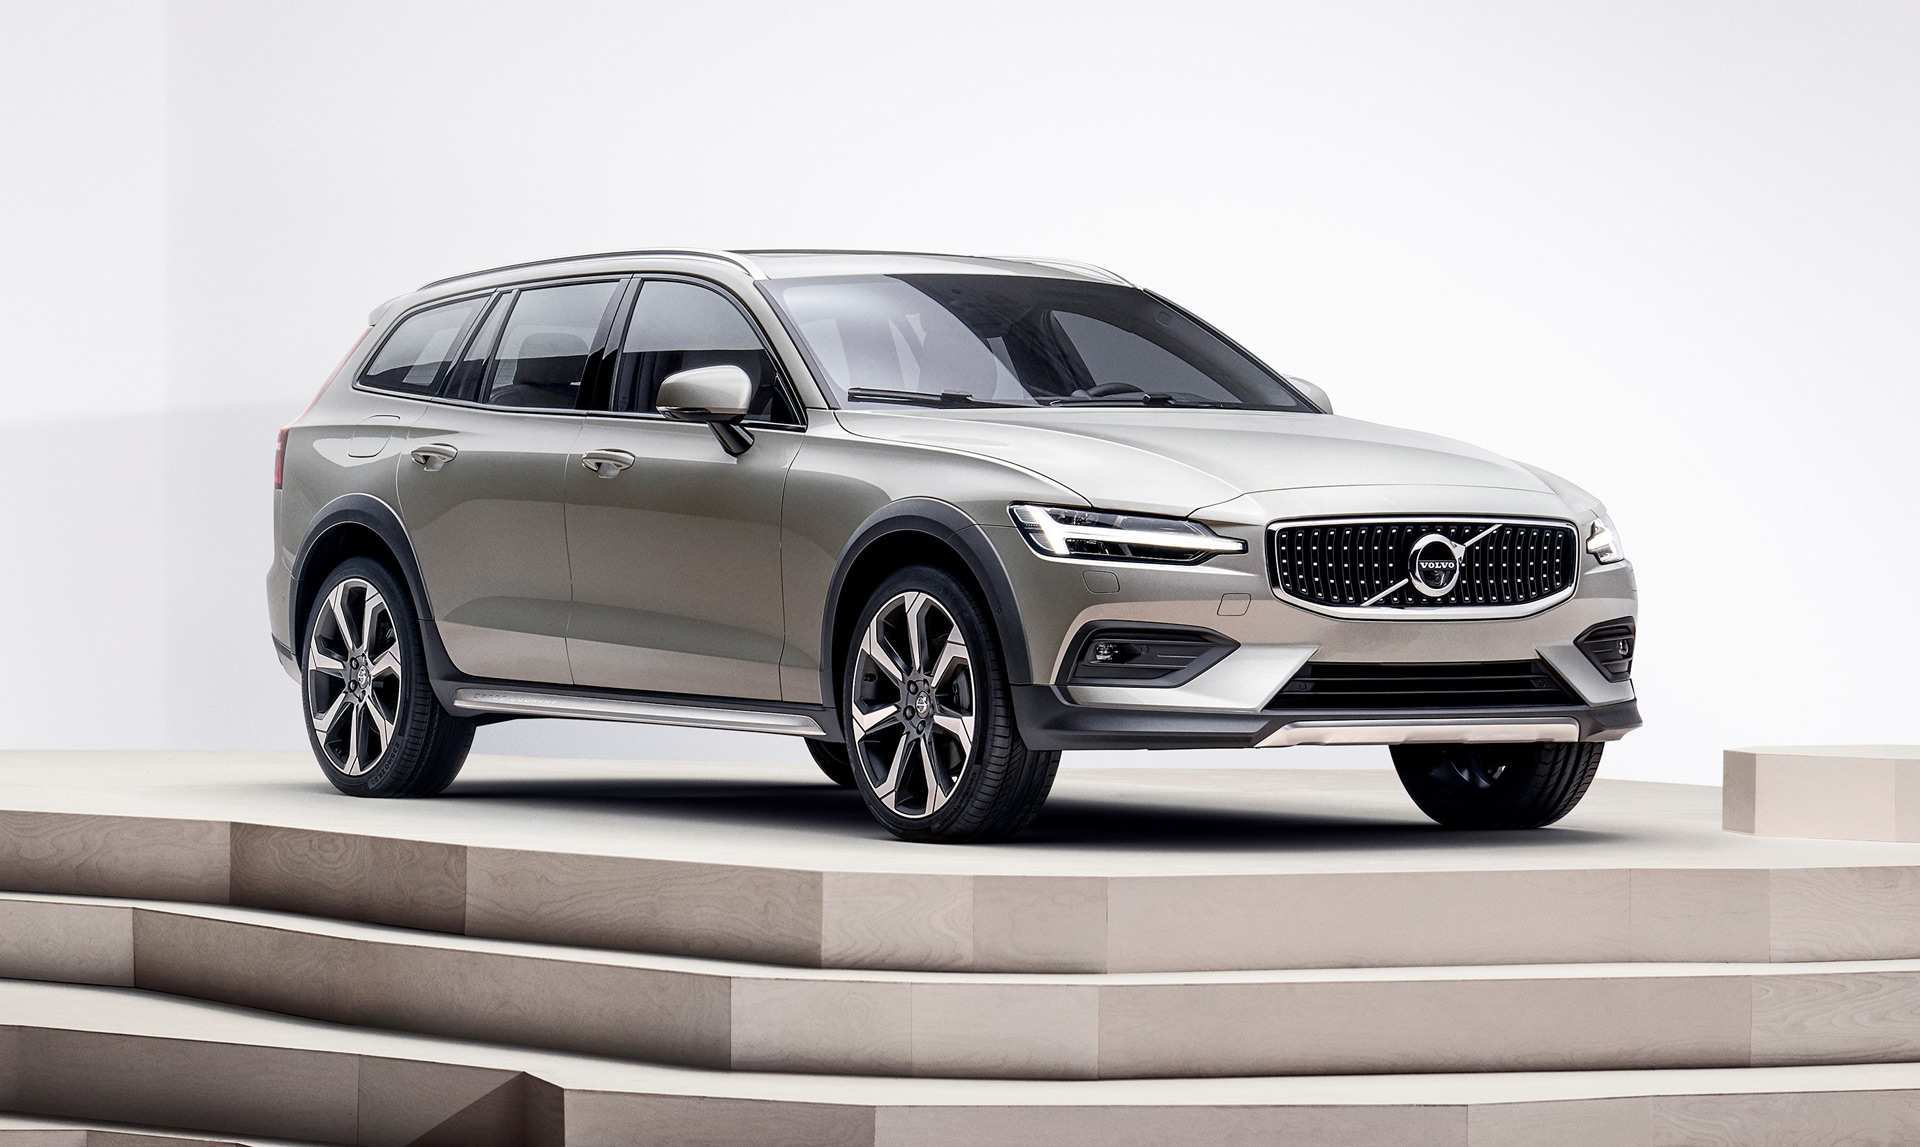 89 New 2019 Volvo V60 Cross Country Picture by 2019 Volvo V60 Cross Country